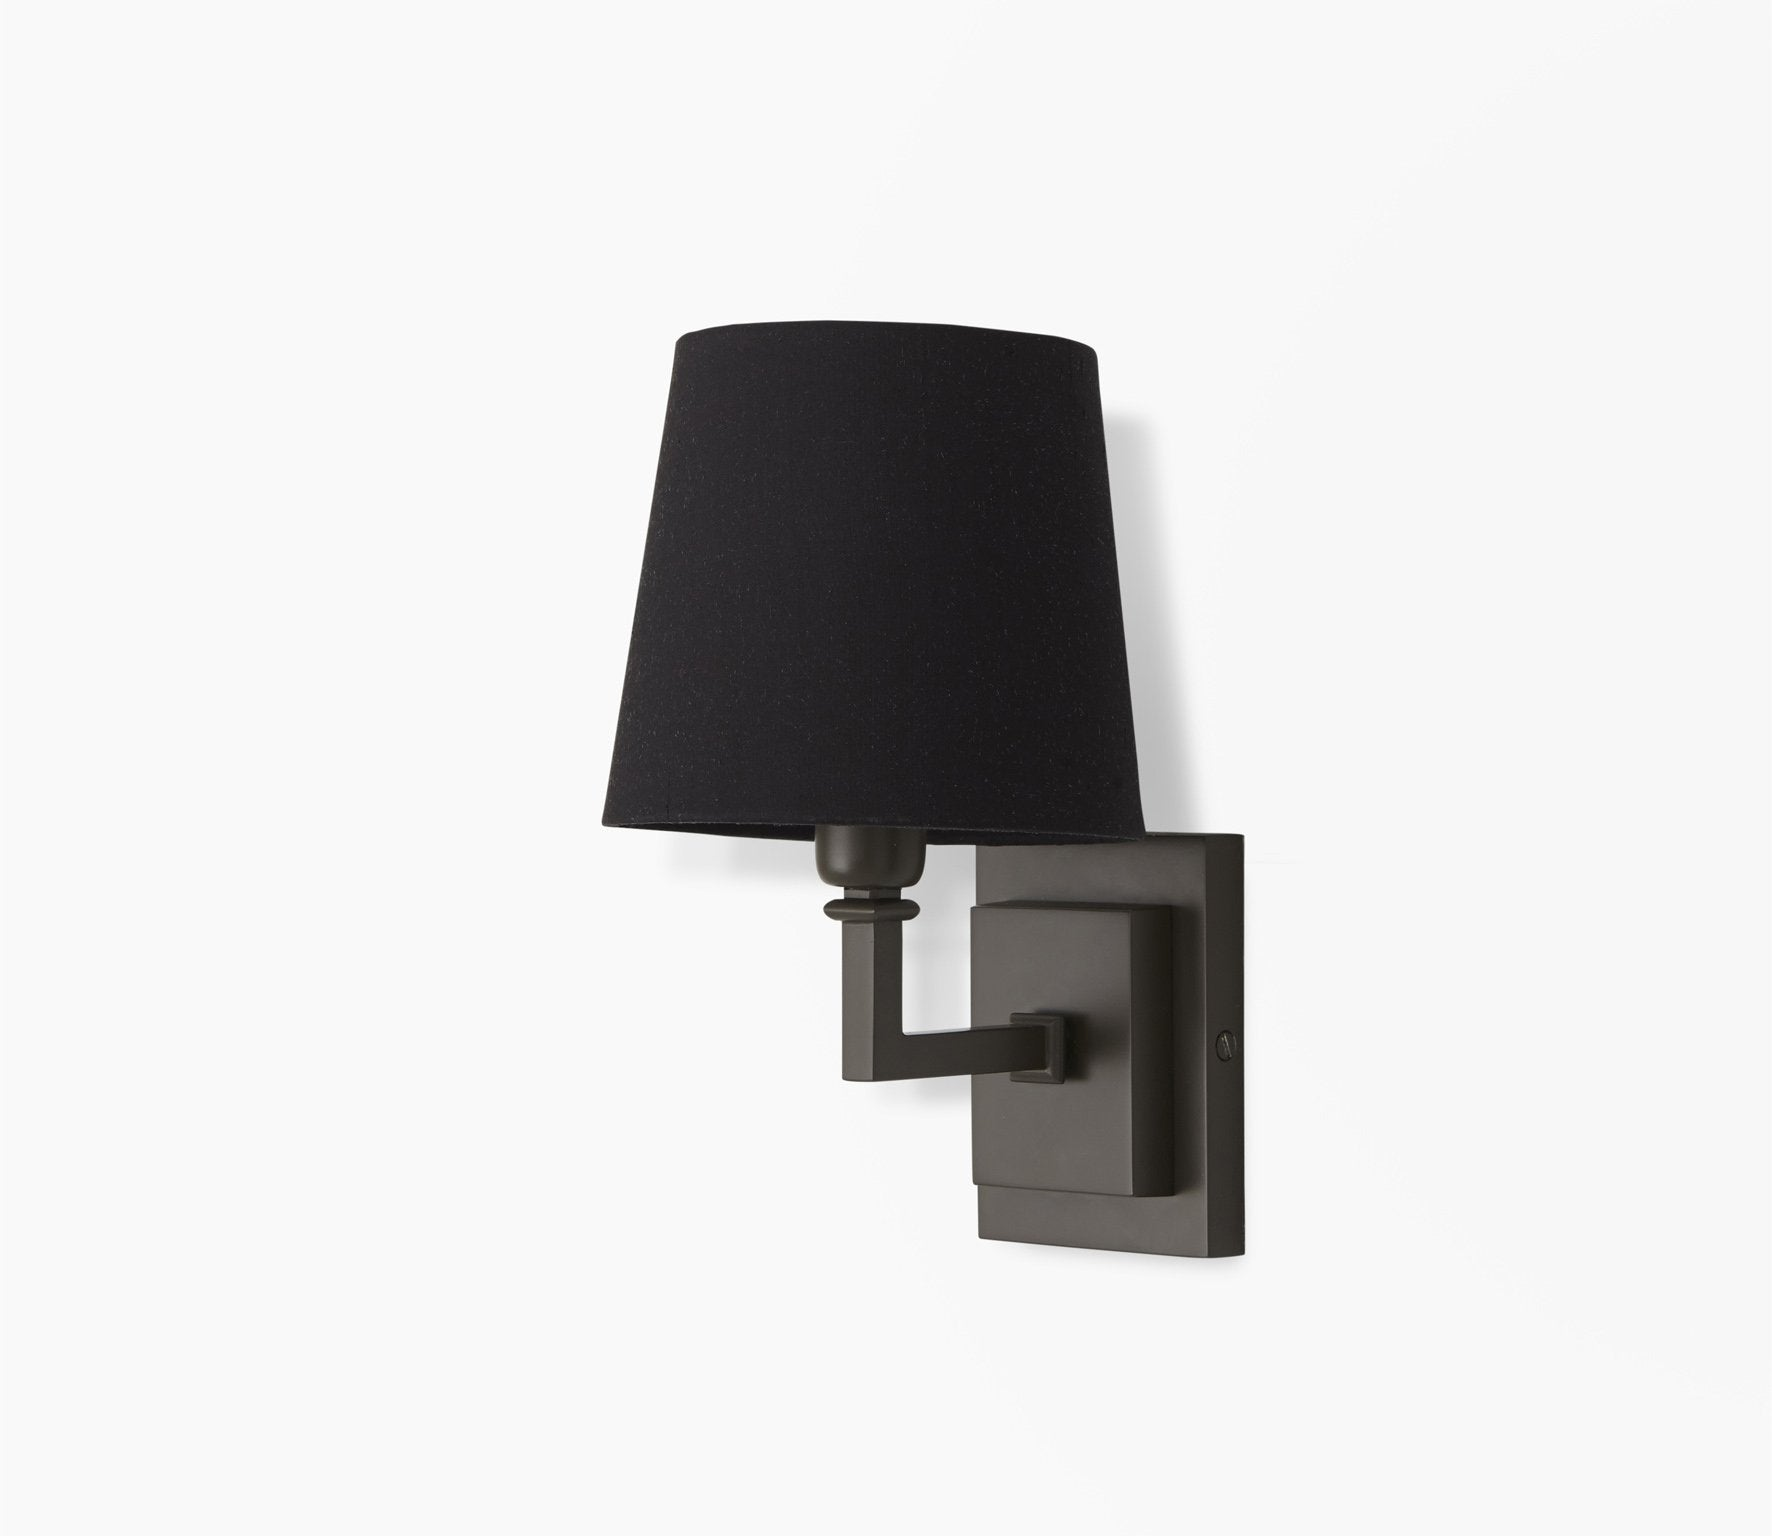 Parker Wall Light with Drum Shade Product Image 2